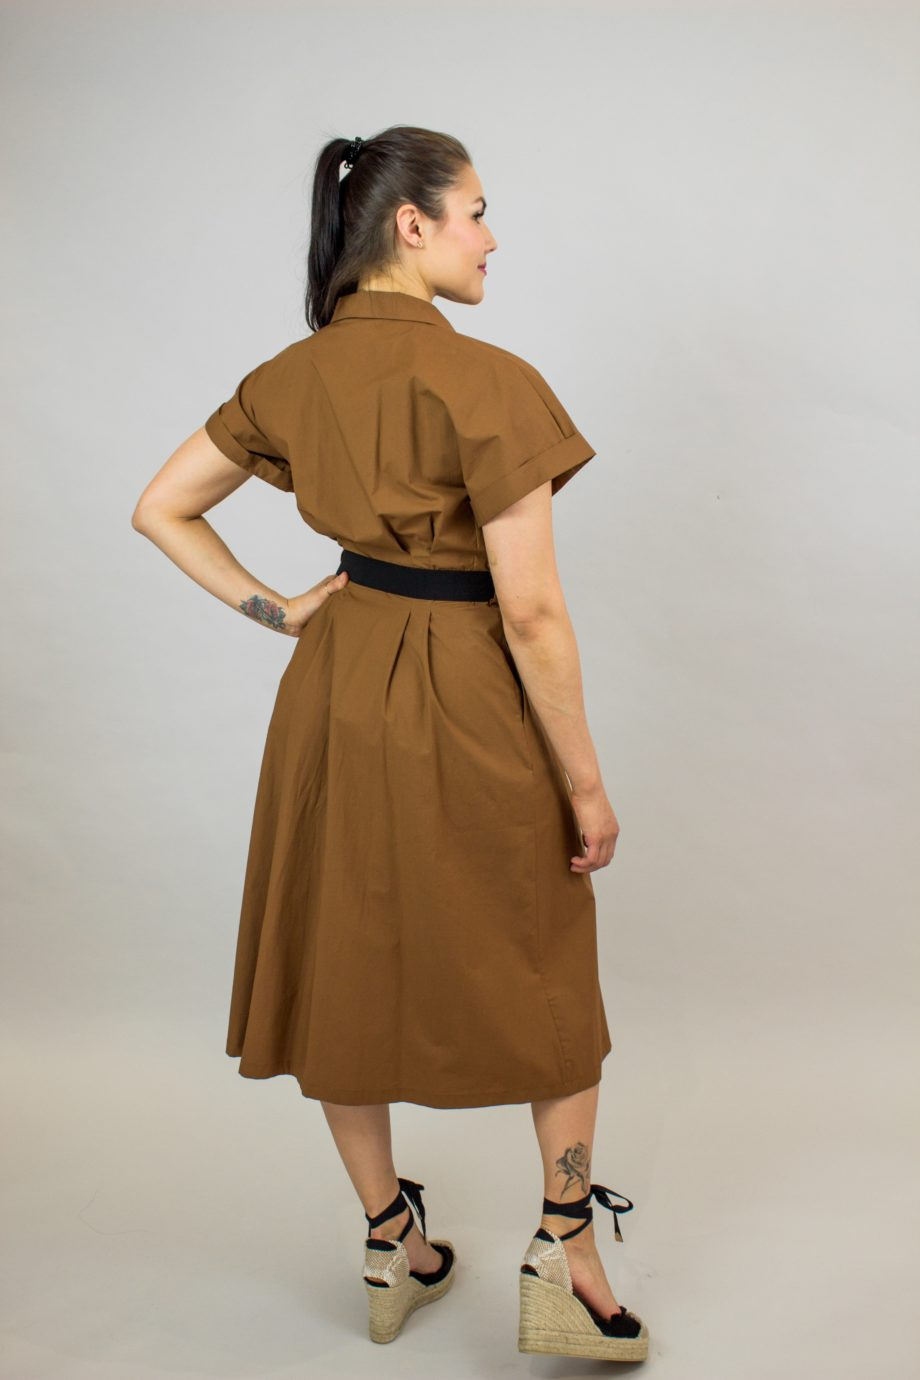 SEVENTY Camel shirt dress